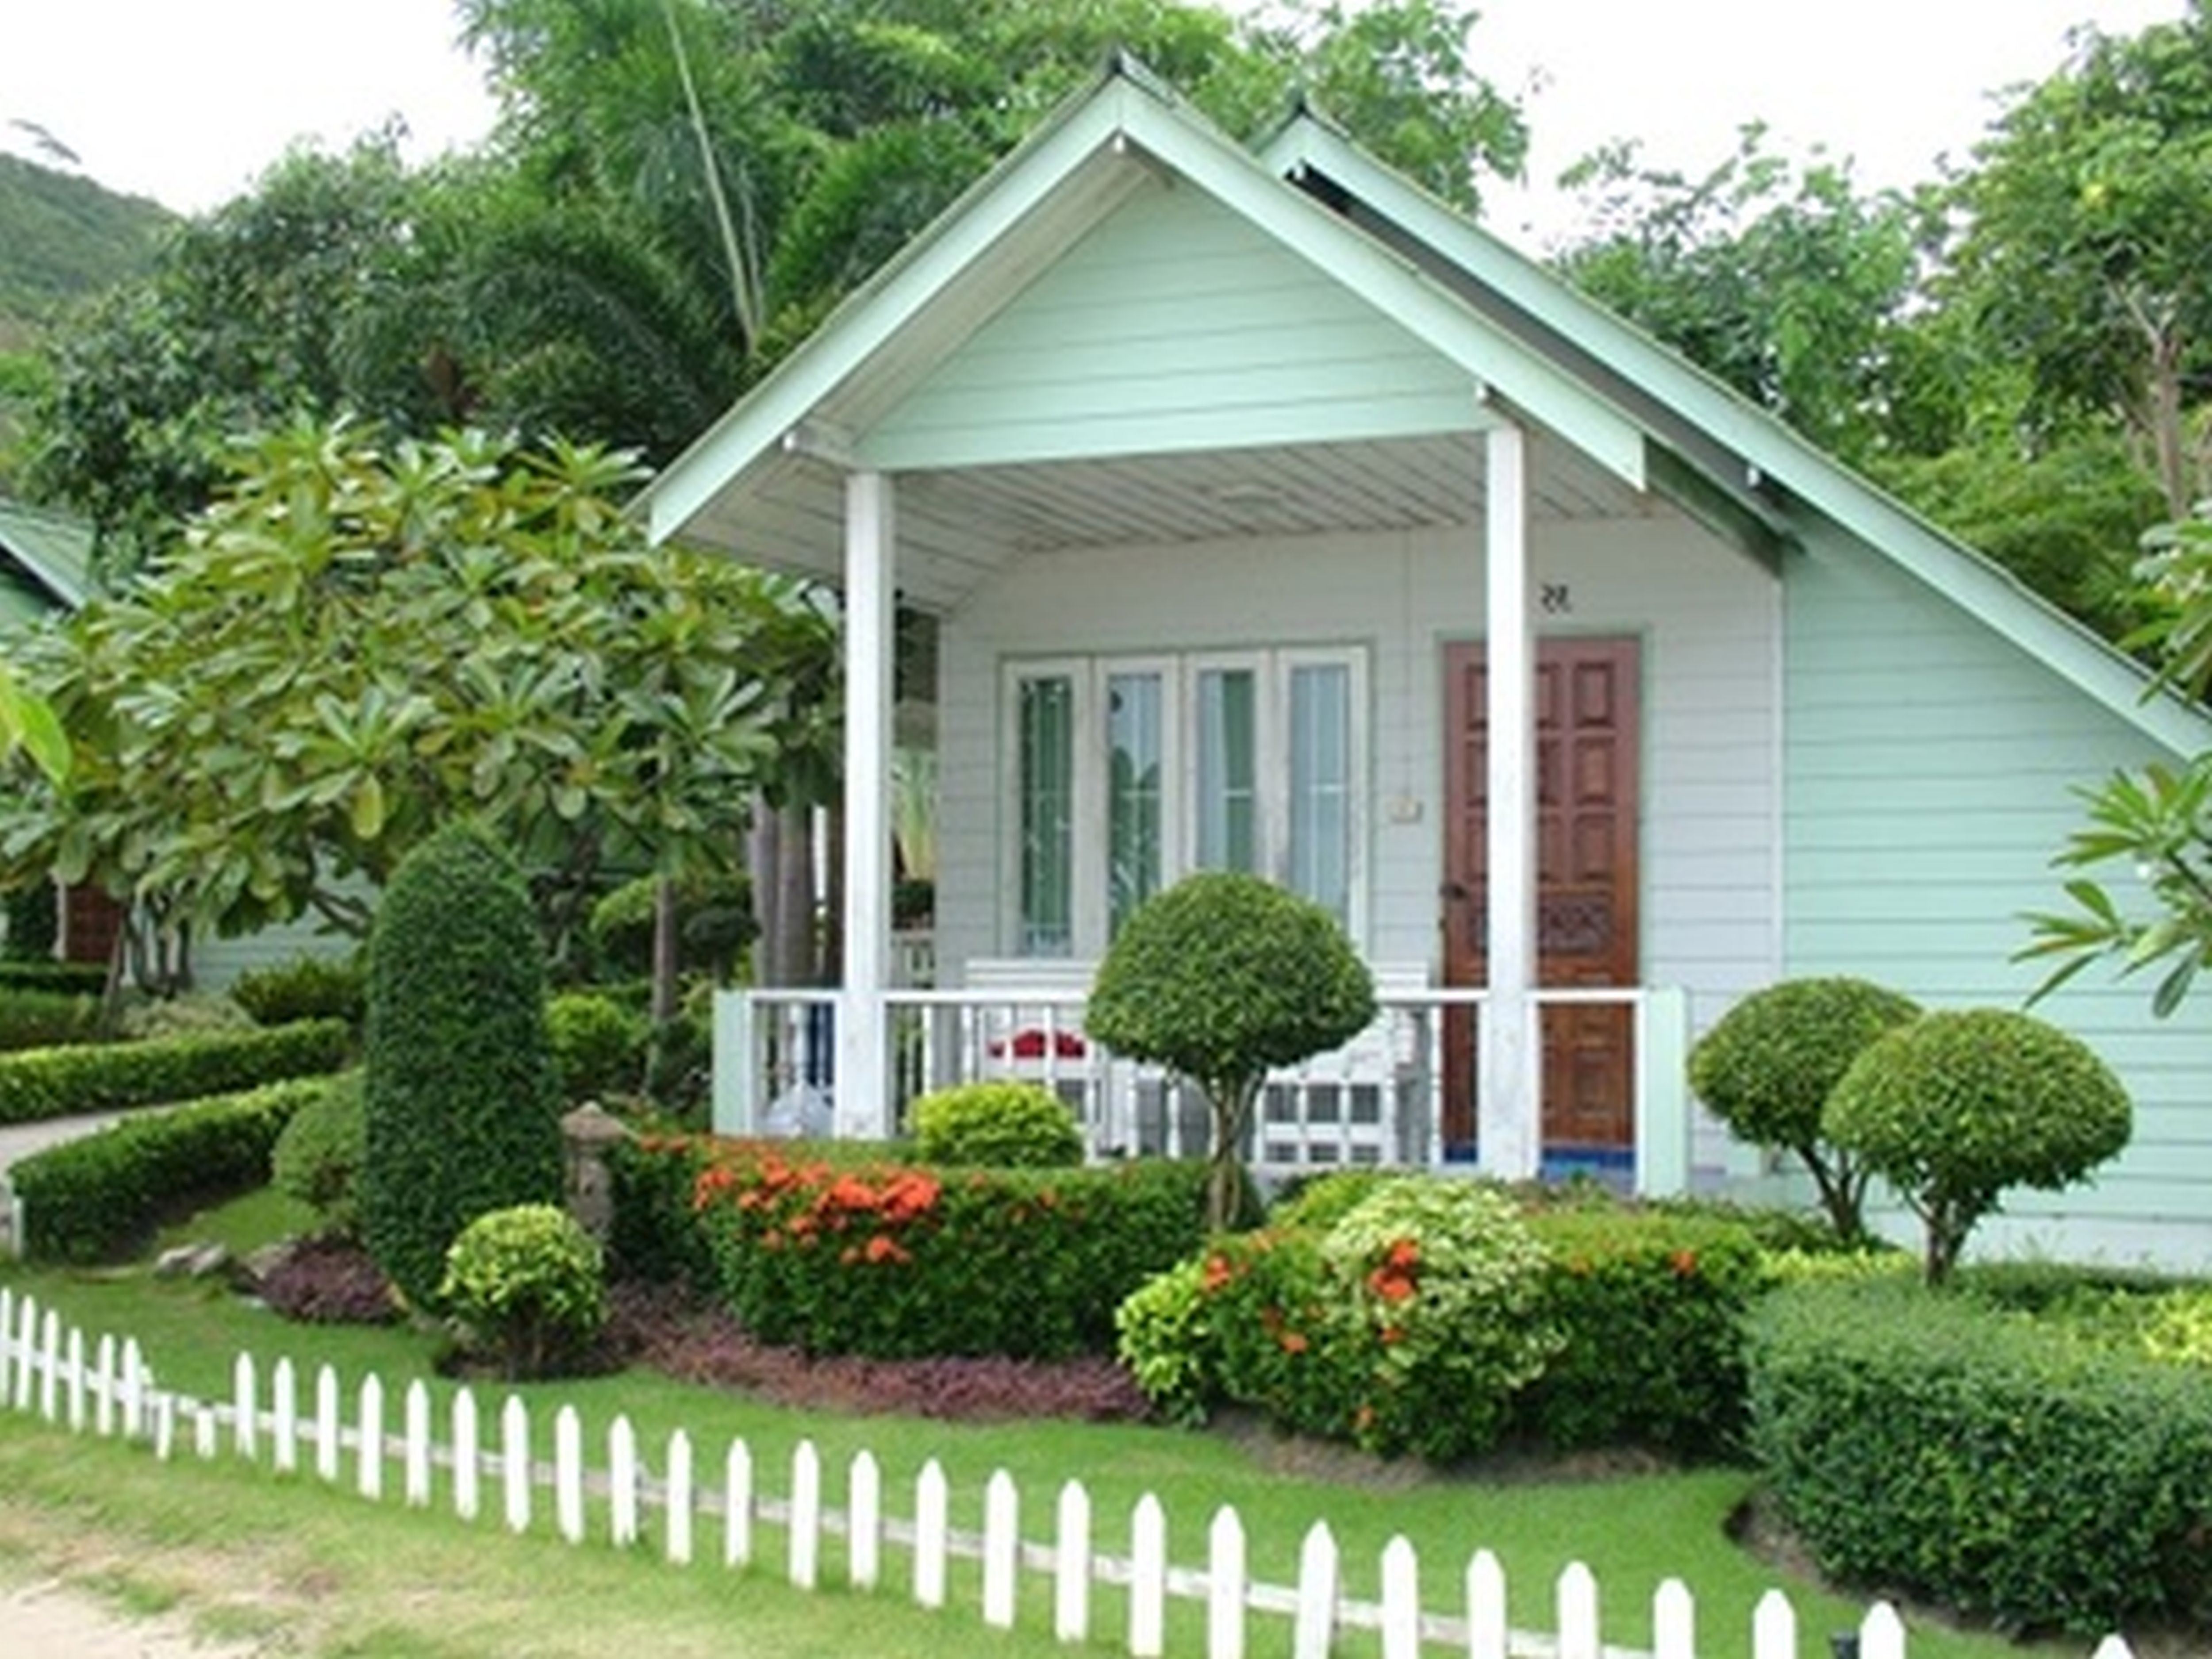 Add Low White Fence in Minimalist Front Yard Landscaping with Orange Flowers and Green Plants